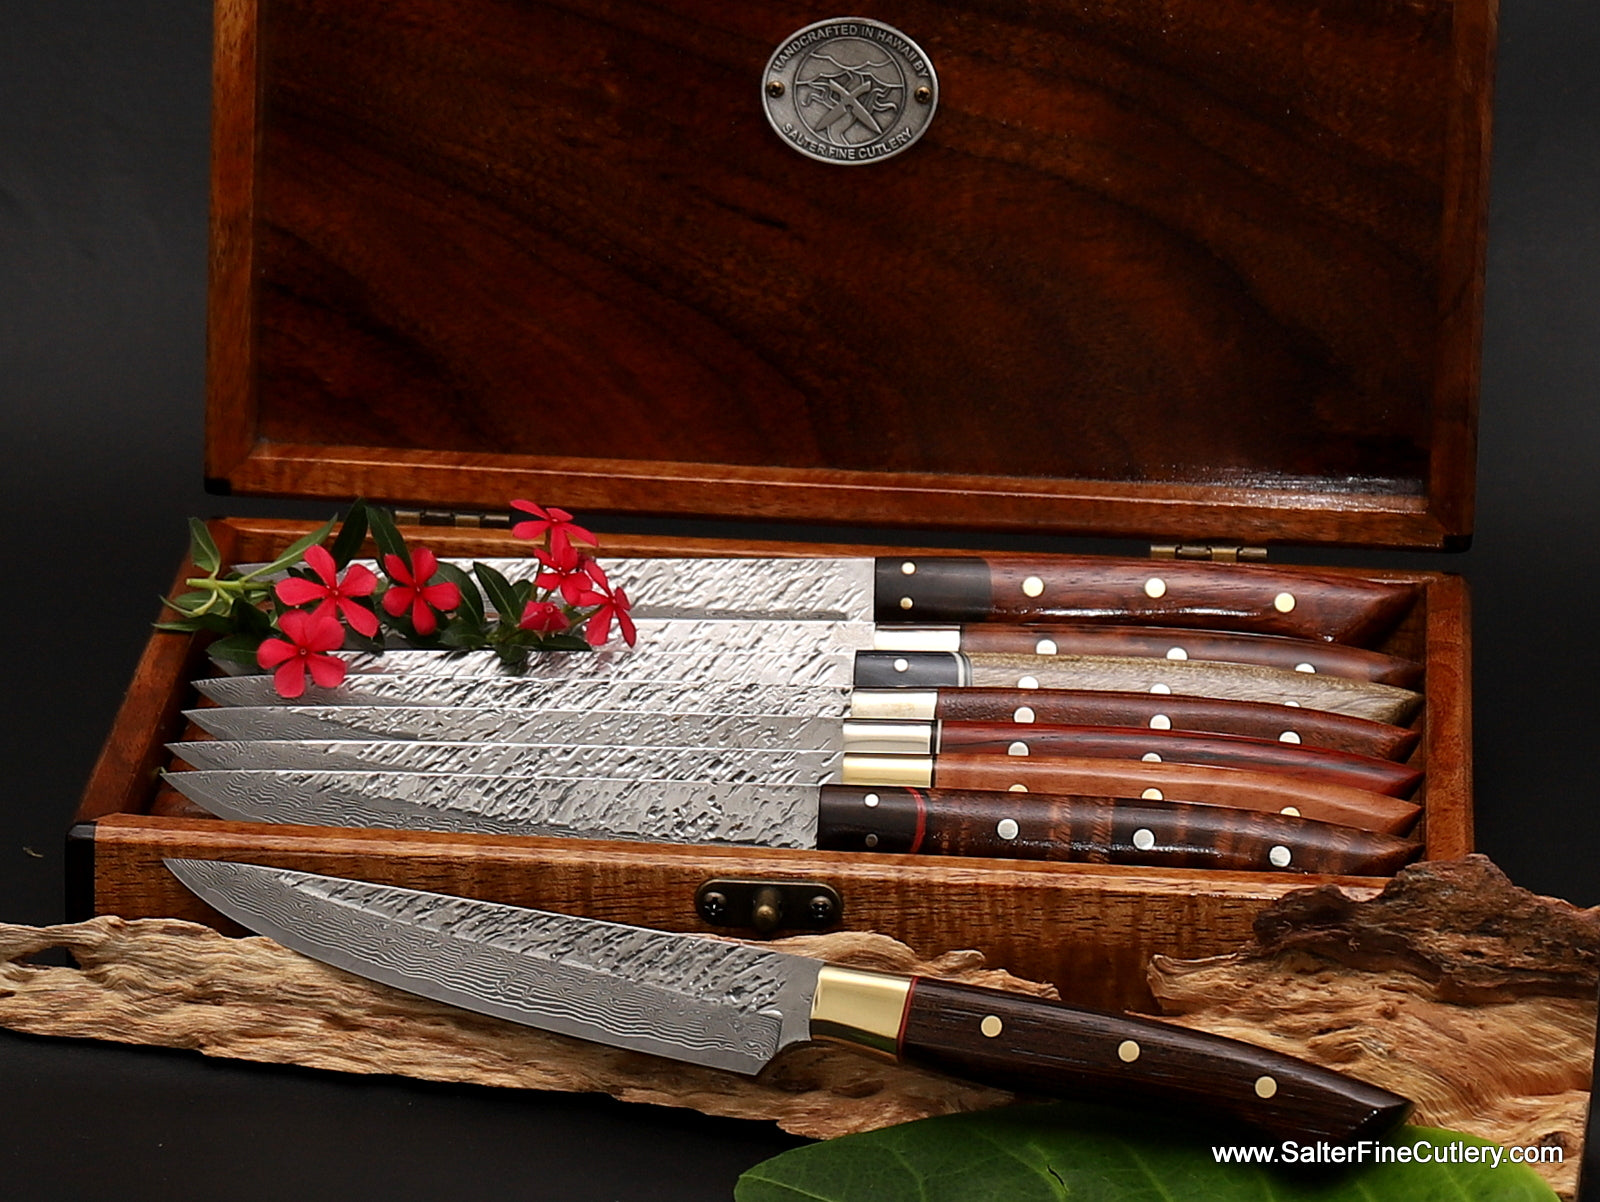 Custom handmade variety pack steak knife set including handles of black wenge wood with a brass bolster and double red accents shown in foreground from Salter Fine Cutlery